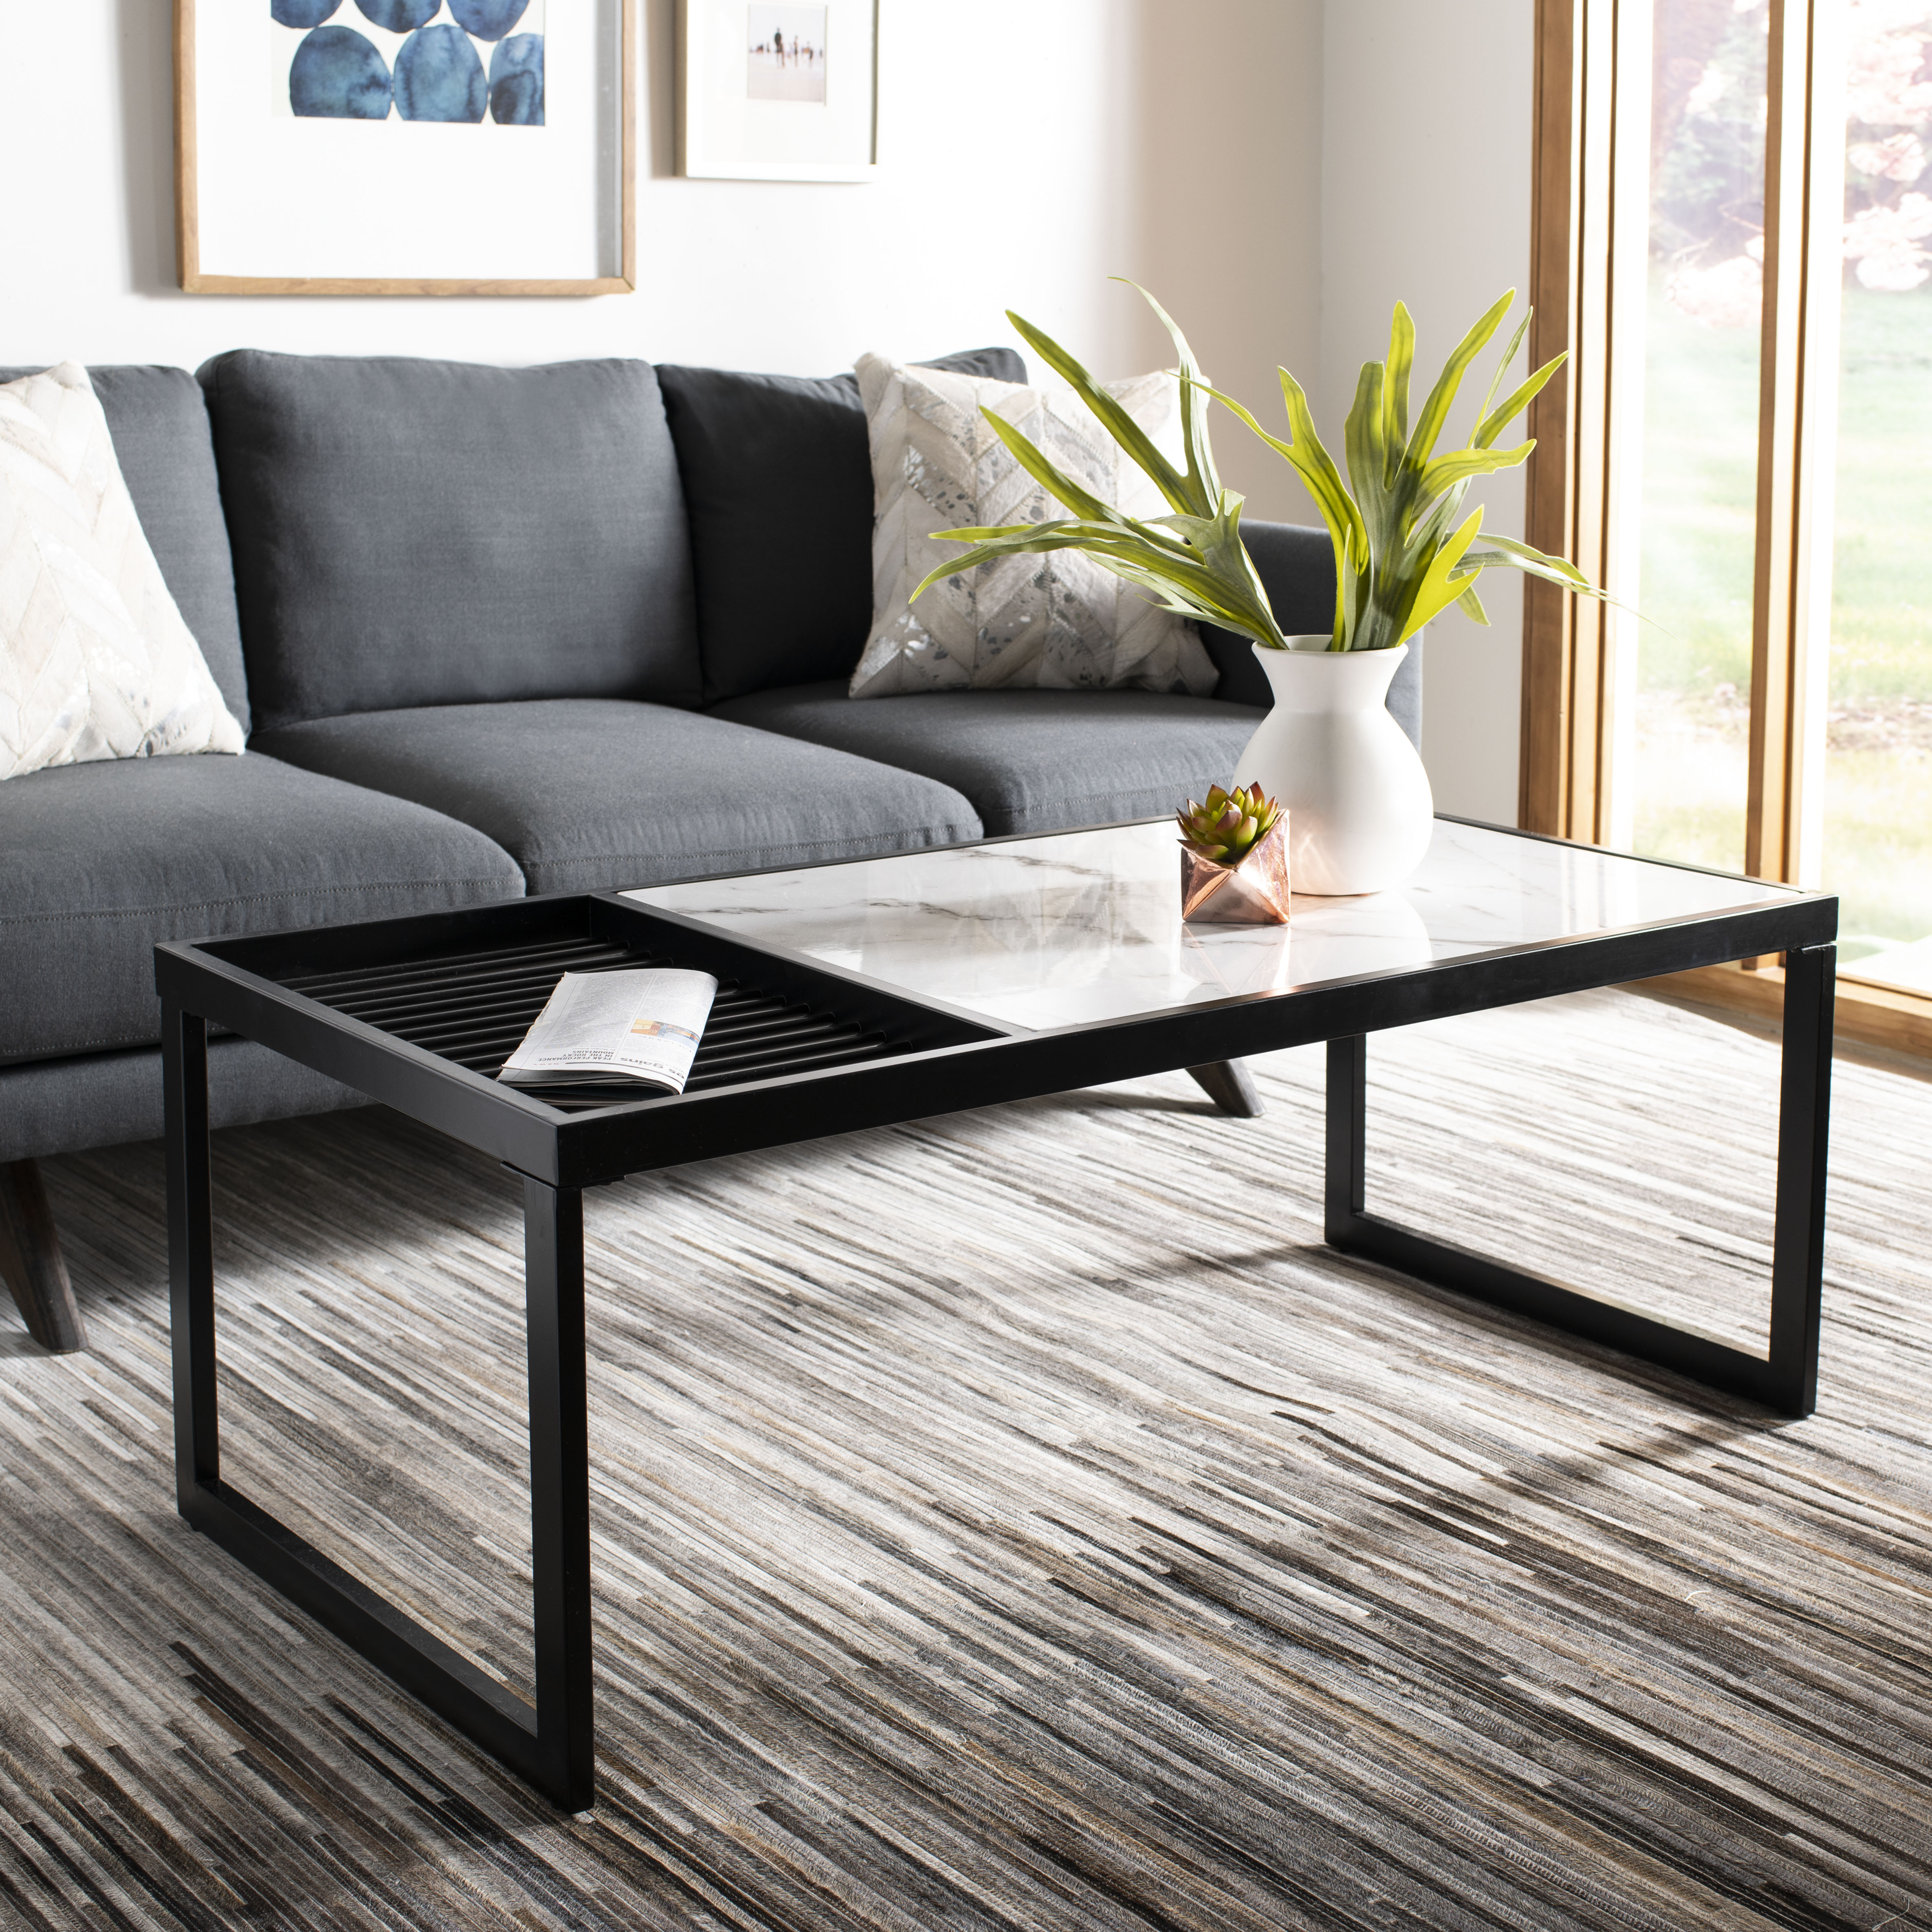 Safavieh Zuri Mid-Century Coffee Table, White Marble/Black